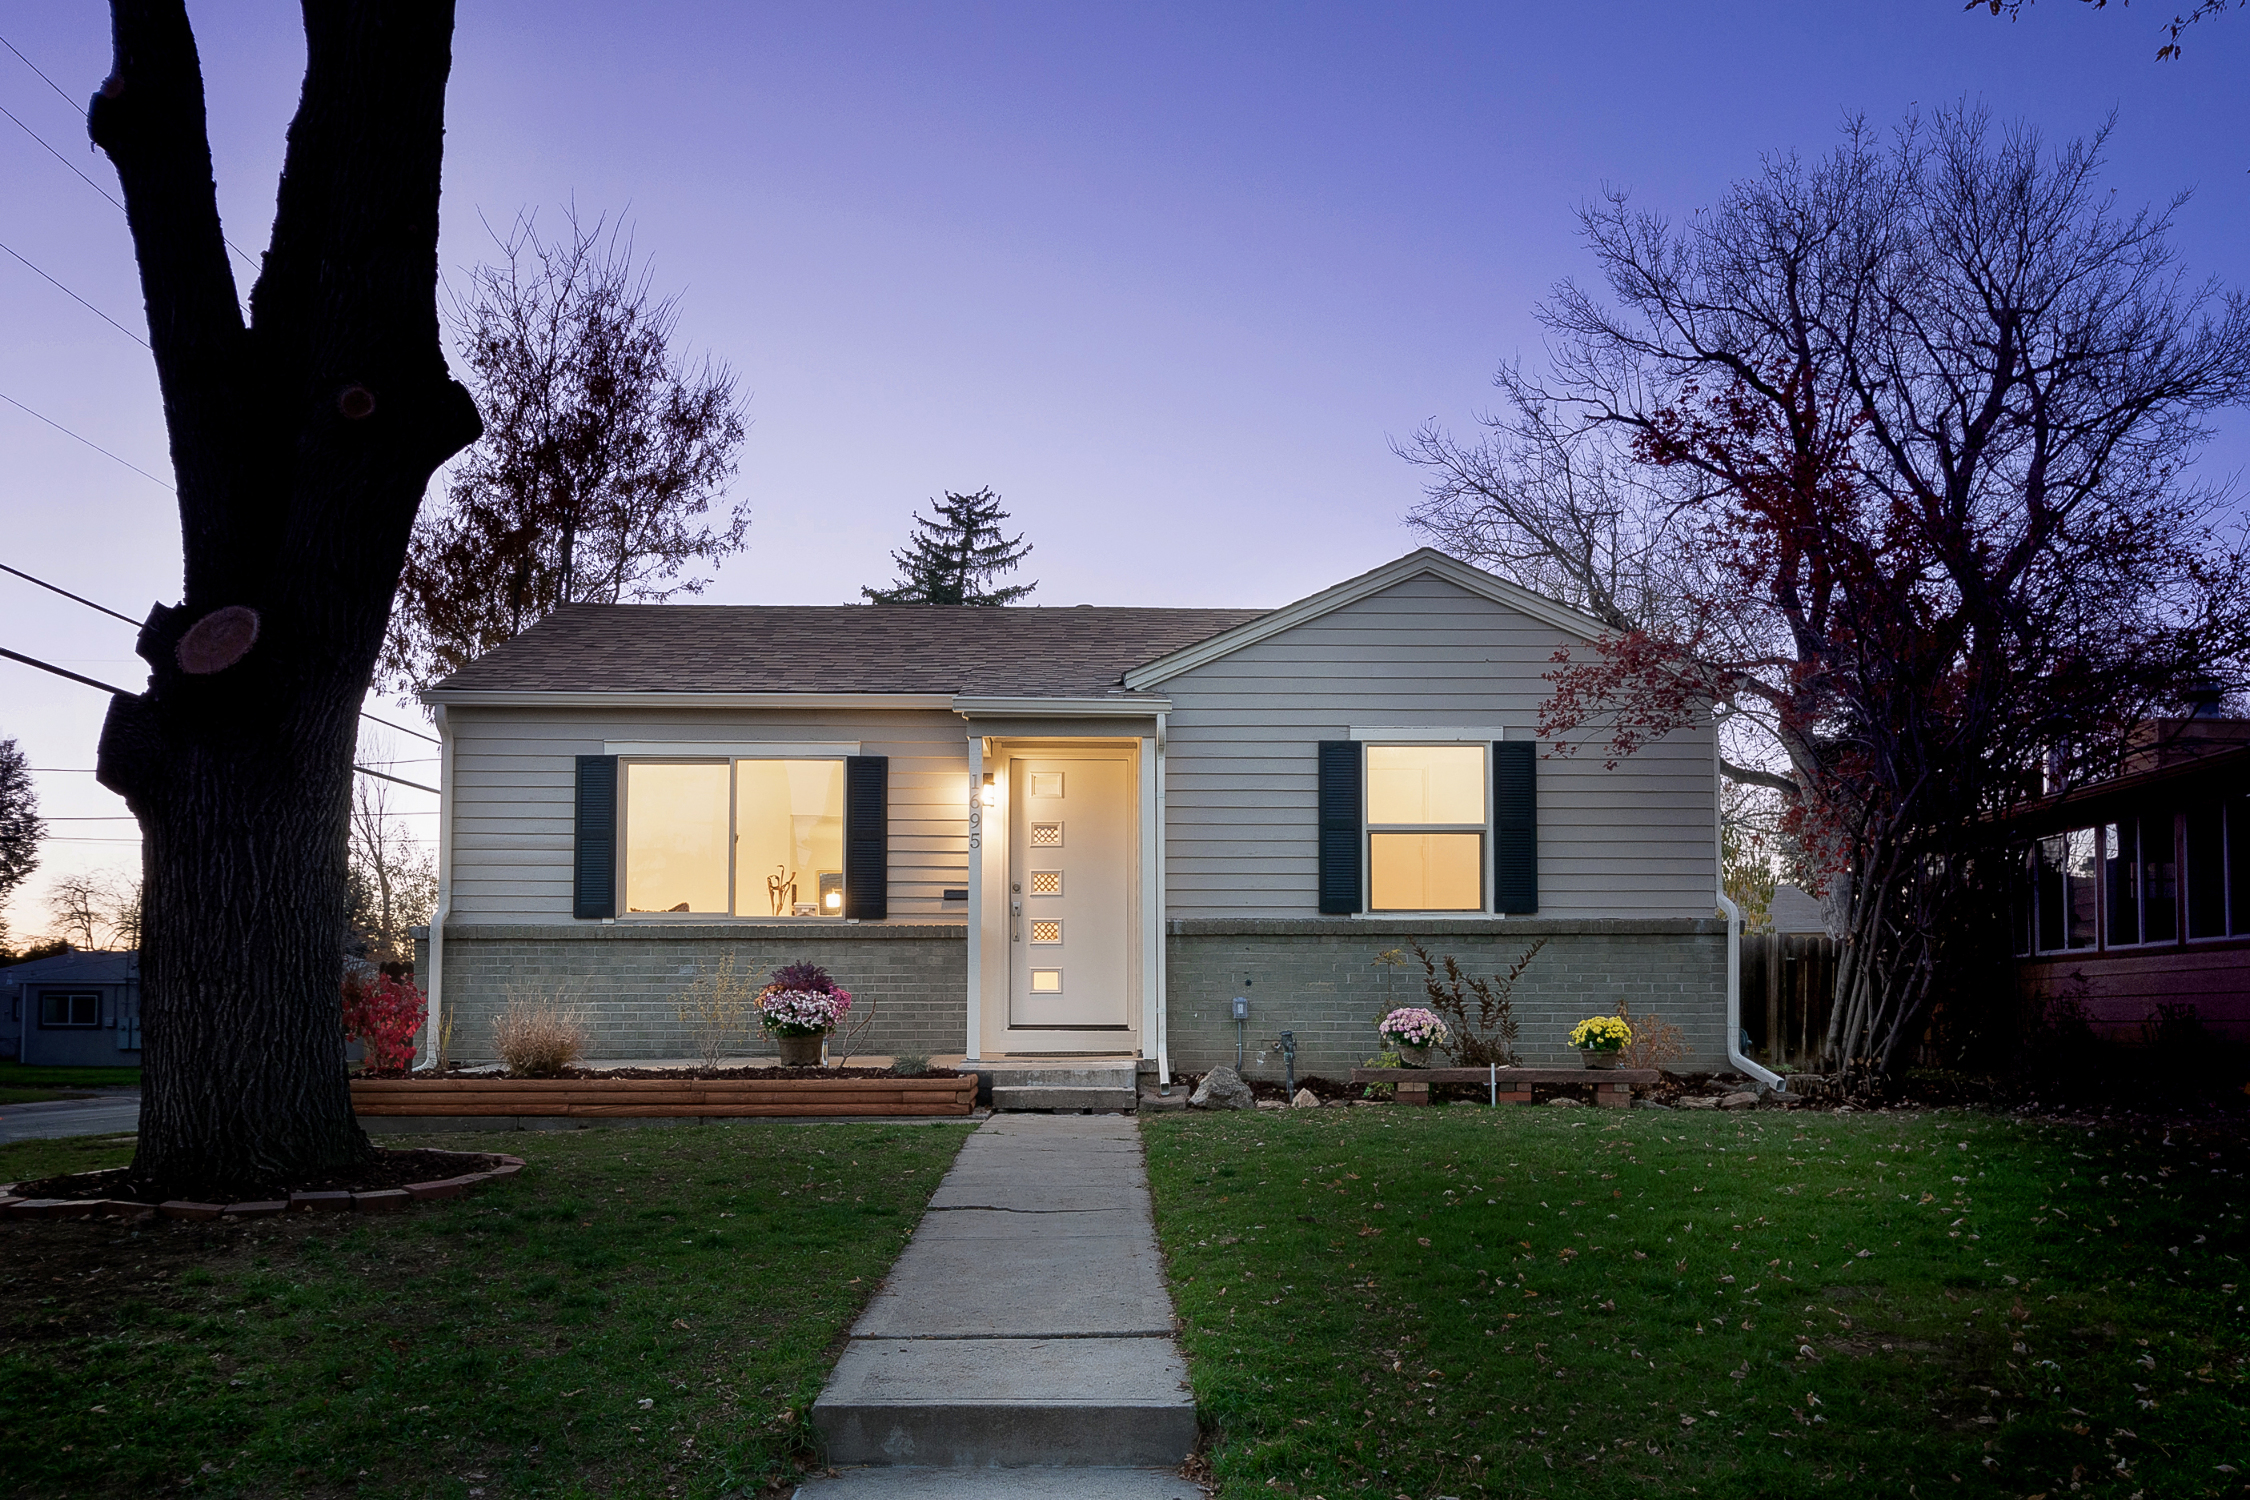 1695 S Madison St Denver, CO listed by Jason Peck 720-446-6301